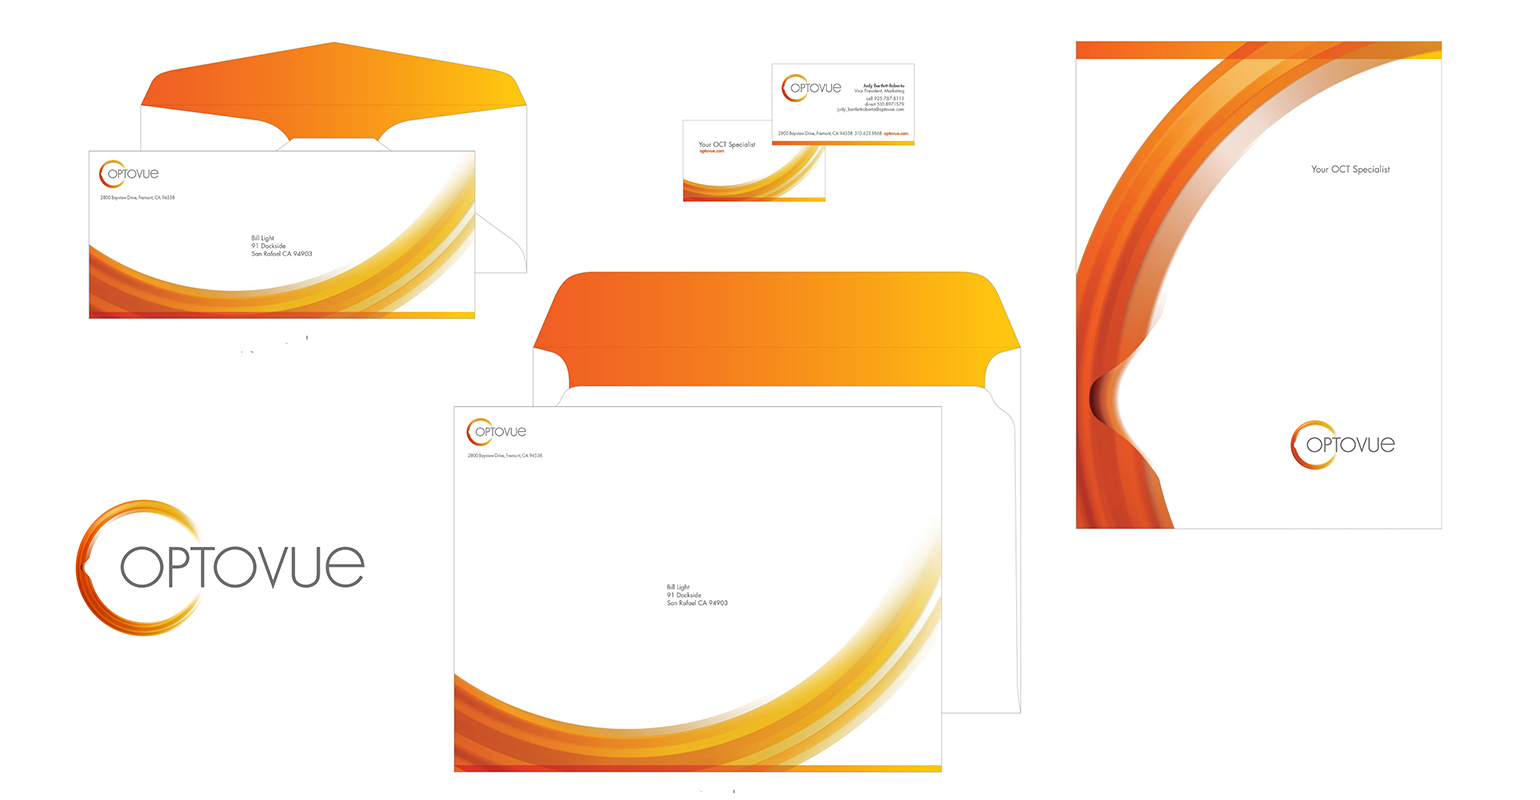 brand identity design created for Optovue by airt group